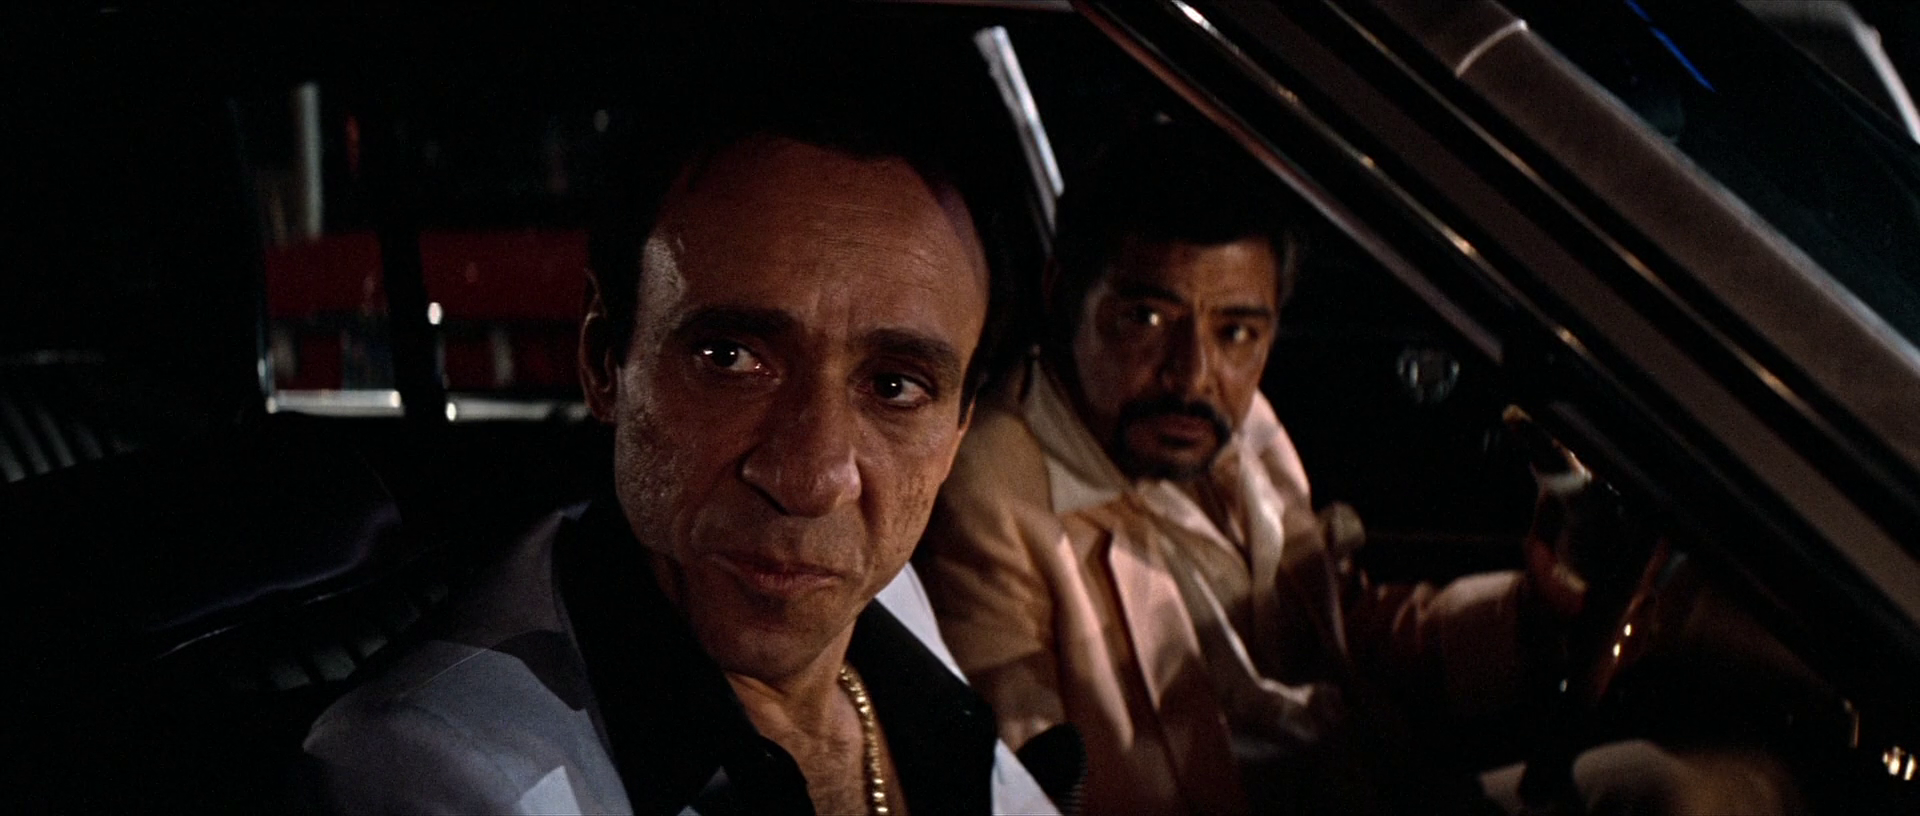 Scarface 1983 REMASTERED 1080p BluRay DTS x264-AMIABLE